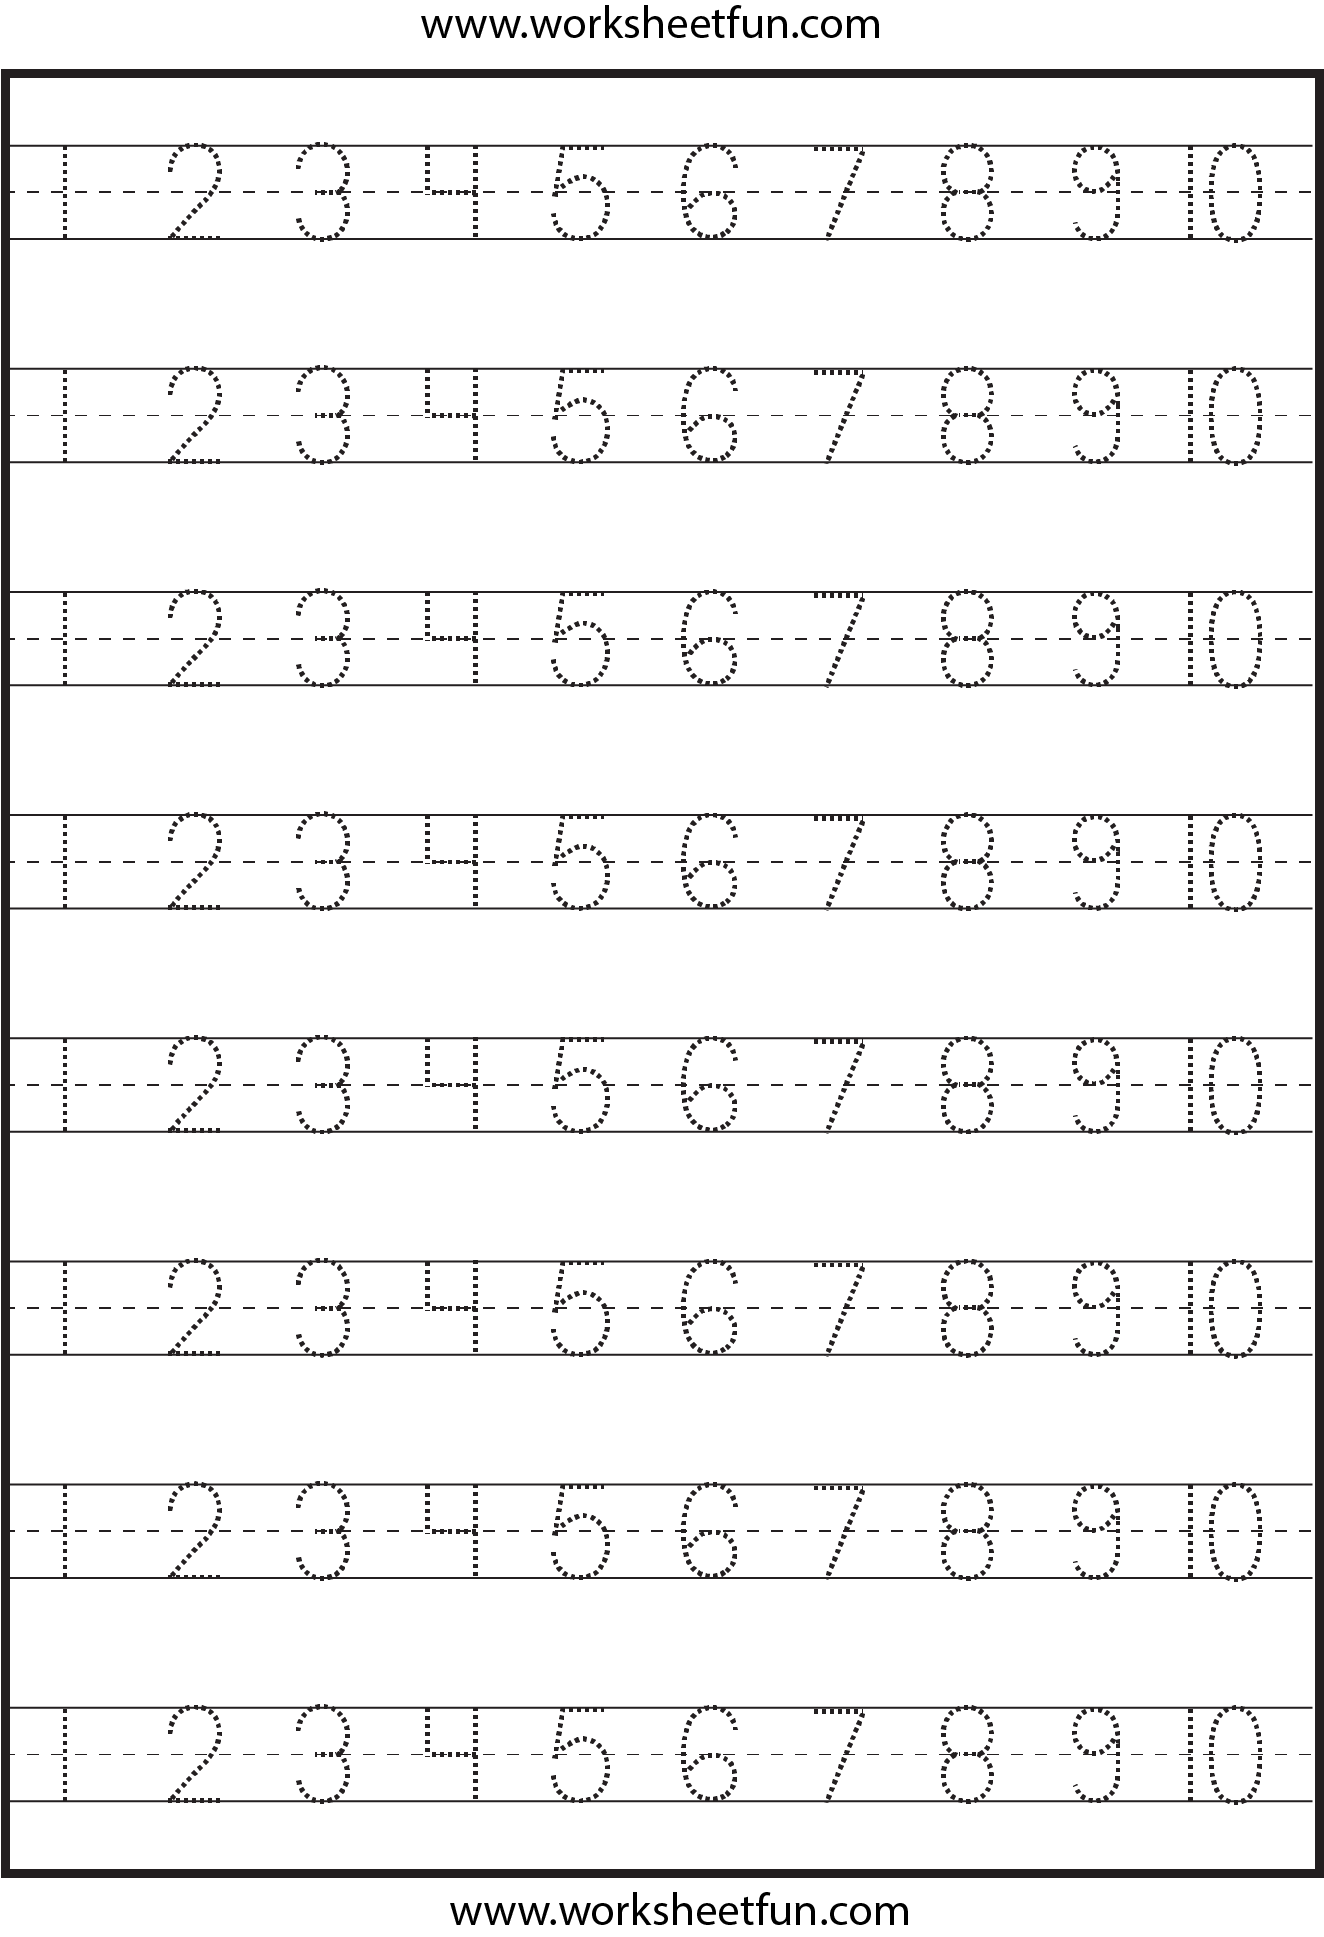 Tracing Numbers Worksheets 1 20 The Best Worksheets Image